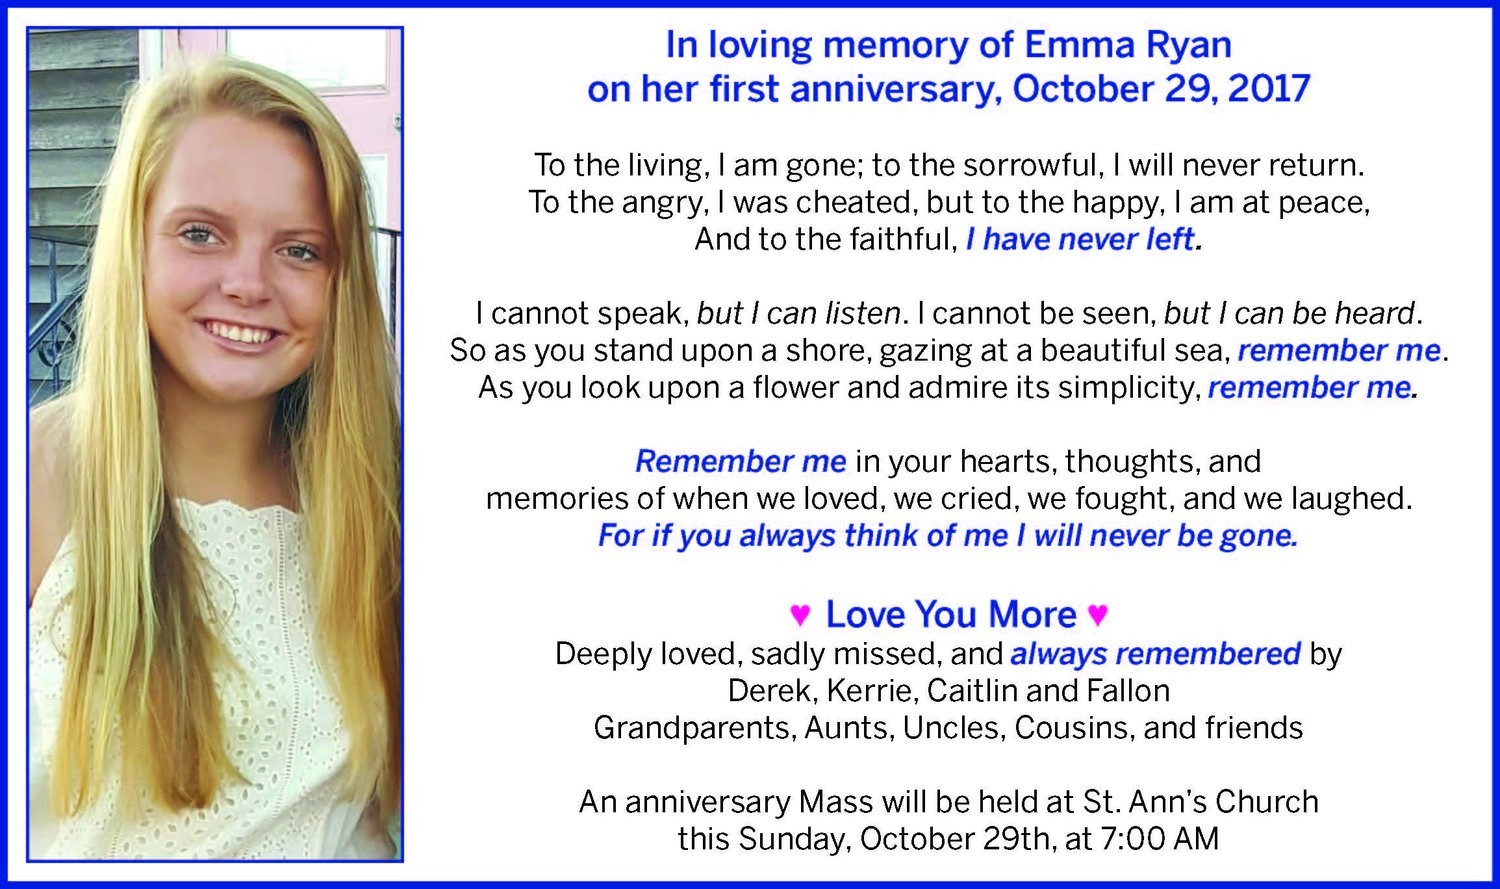 No act of kindness, no matter how small, is ever wasted- Emma Ryan Memorial Fund Info